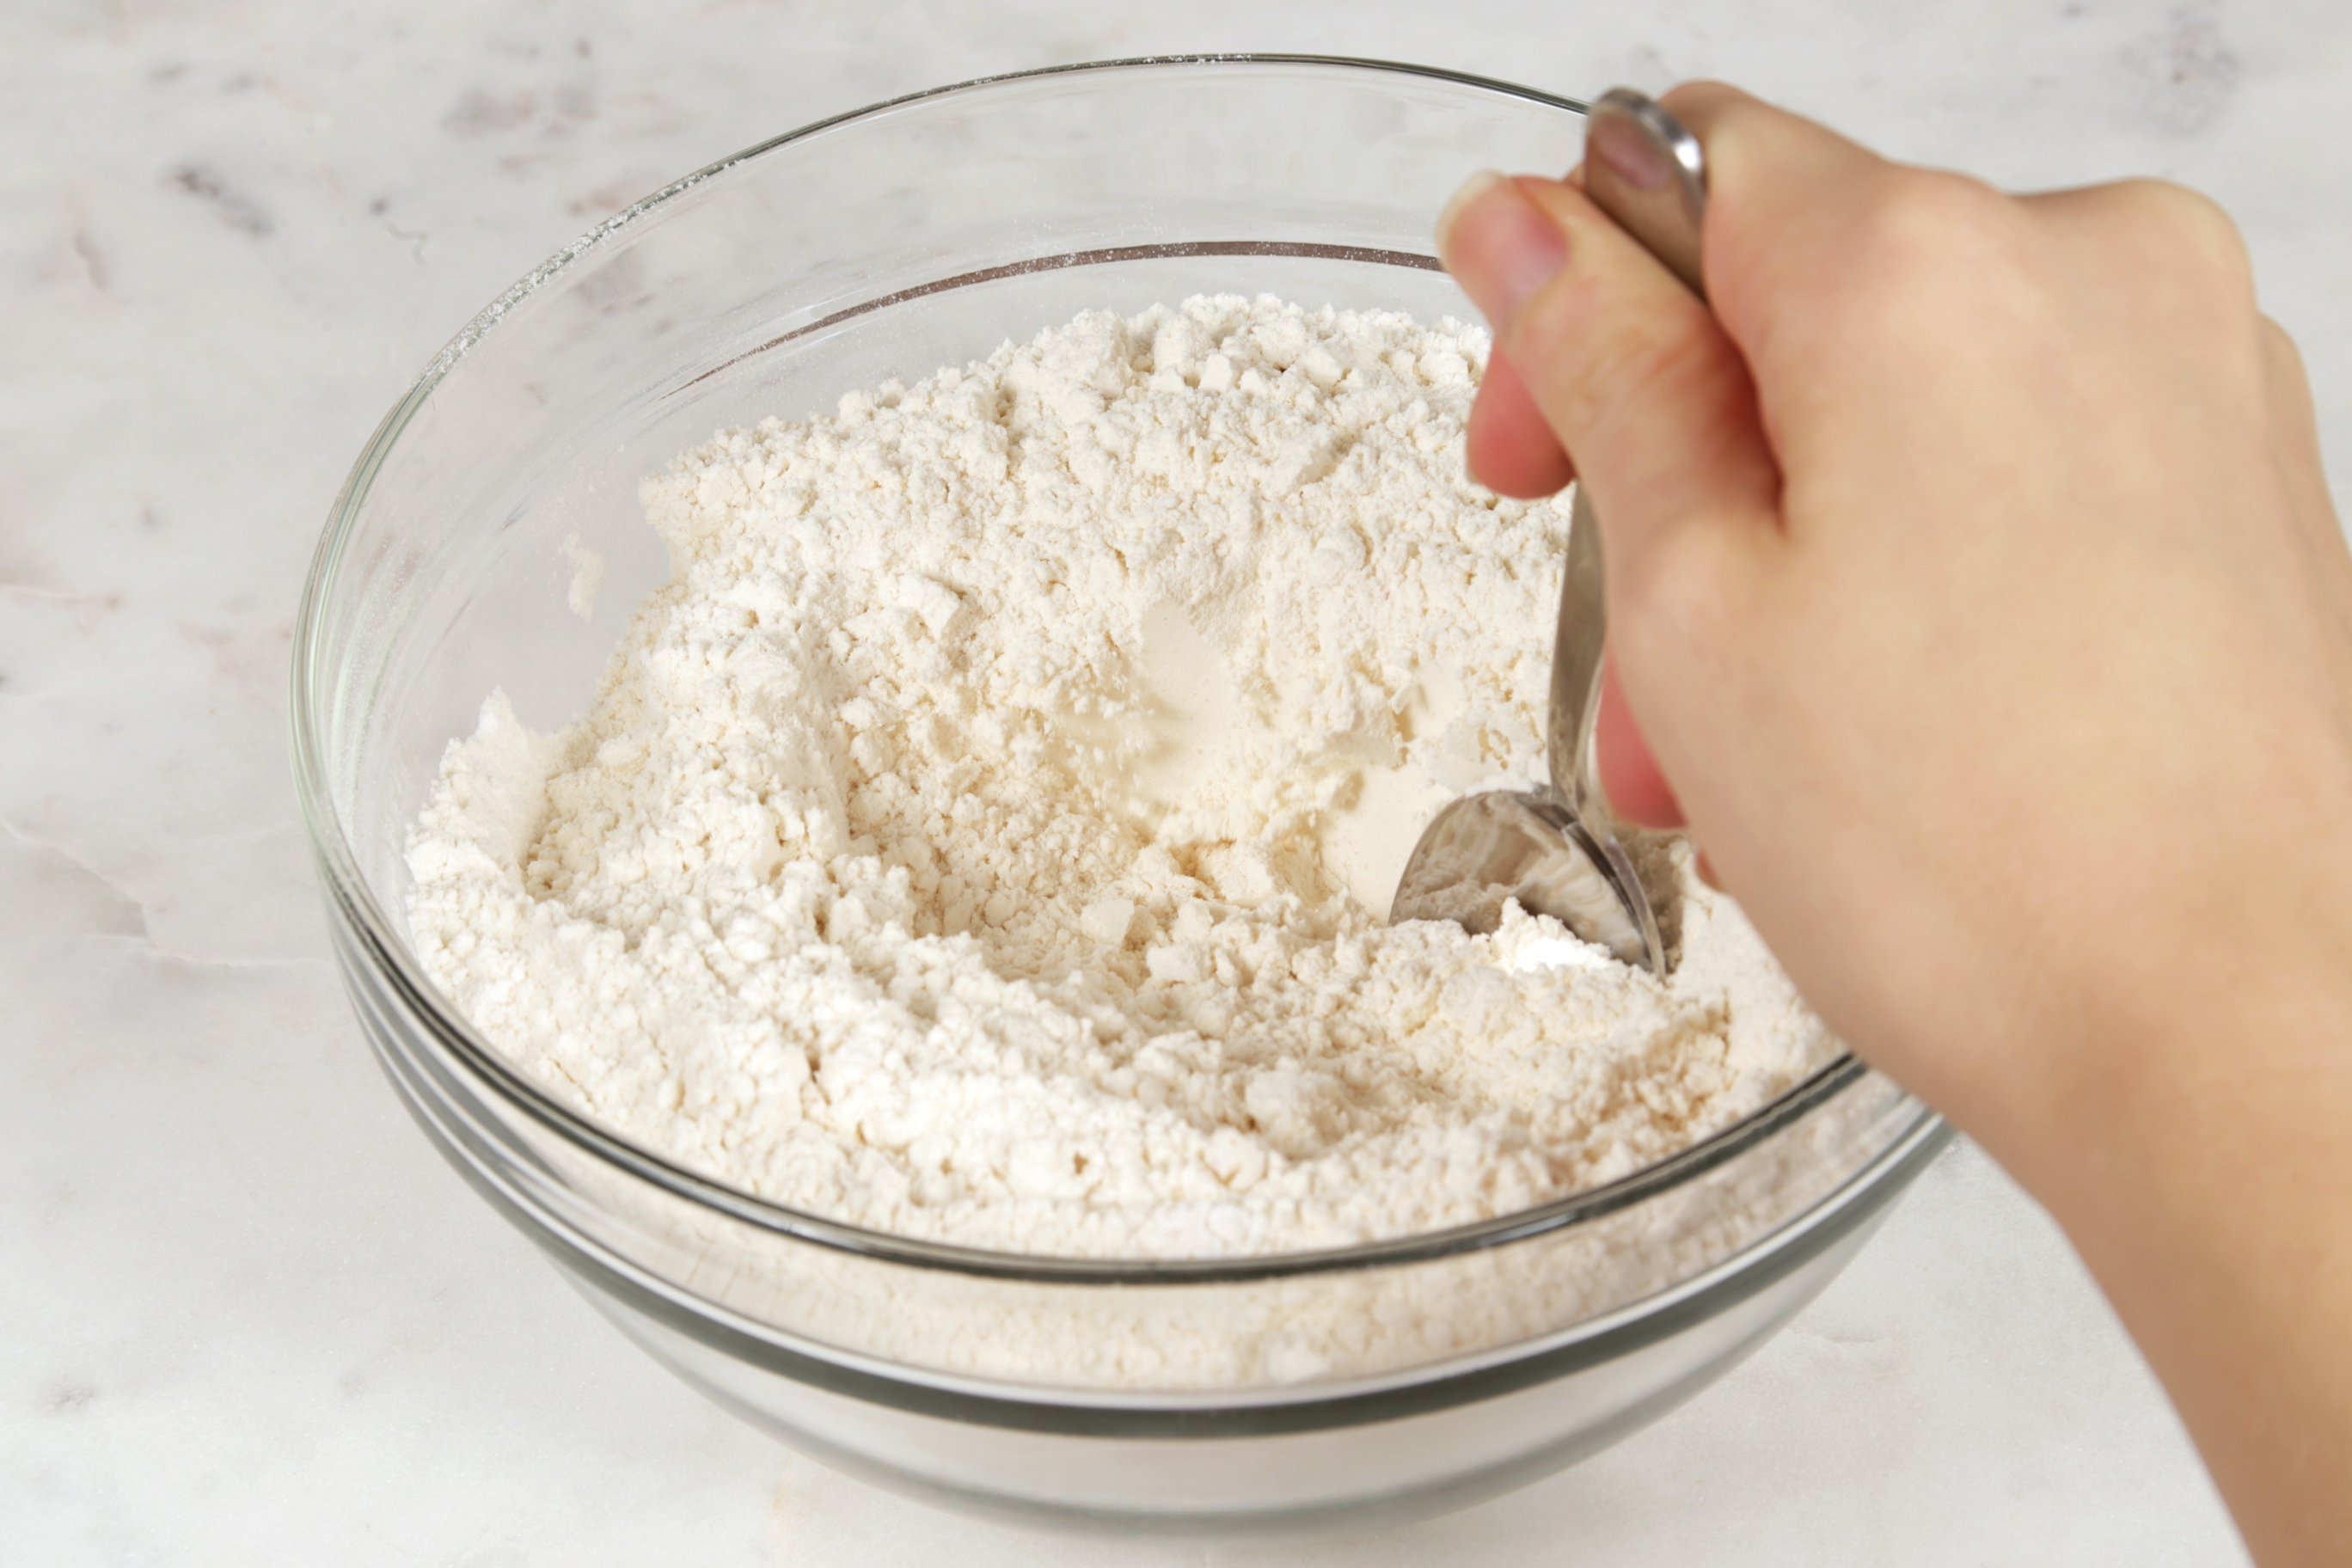 Picture of Dry Ingredients